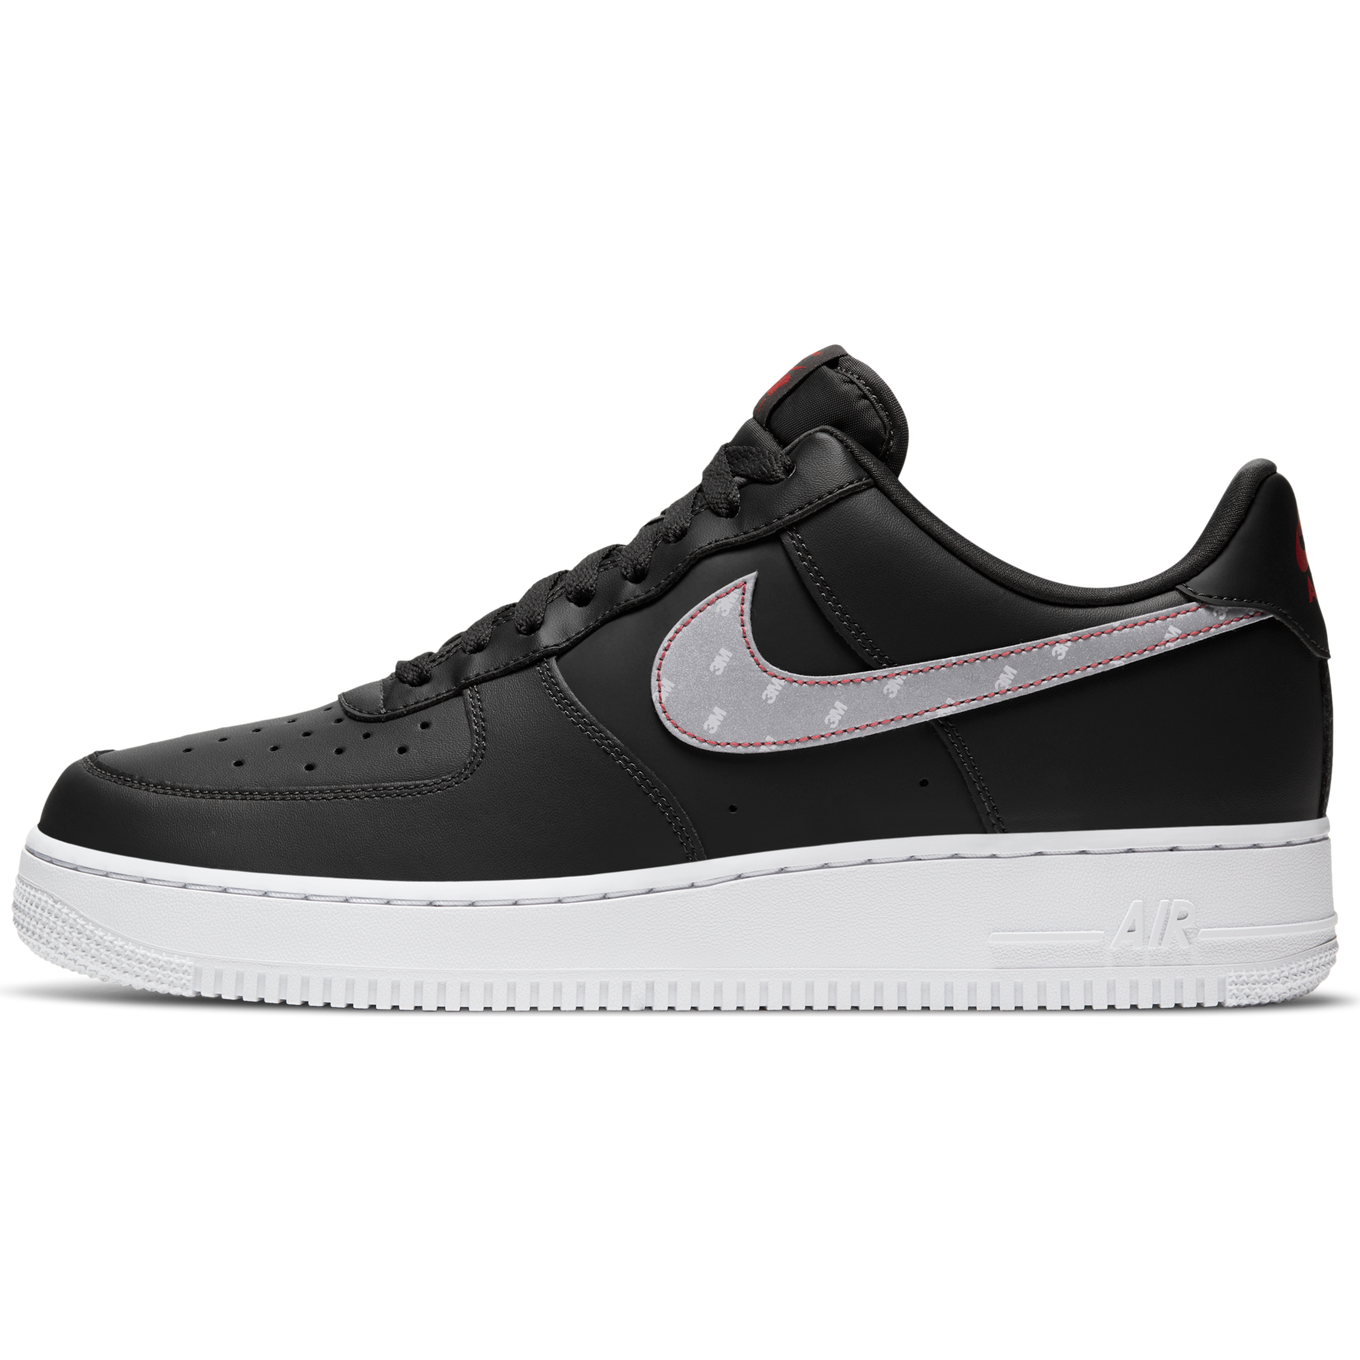 NIKE AIR FORCE 1 07 3M